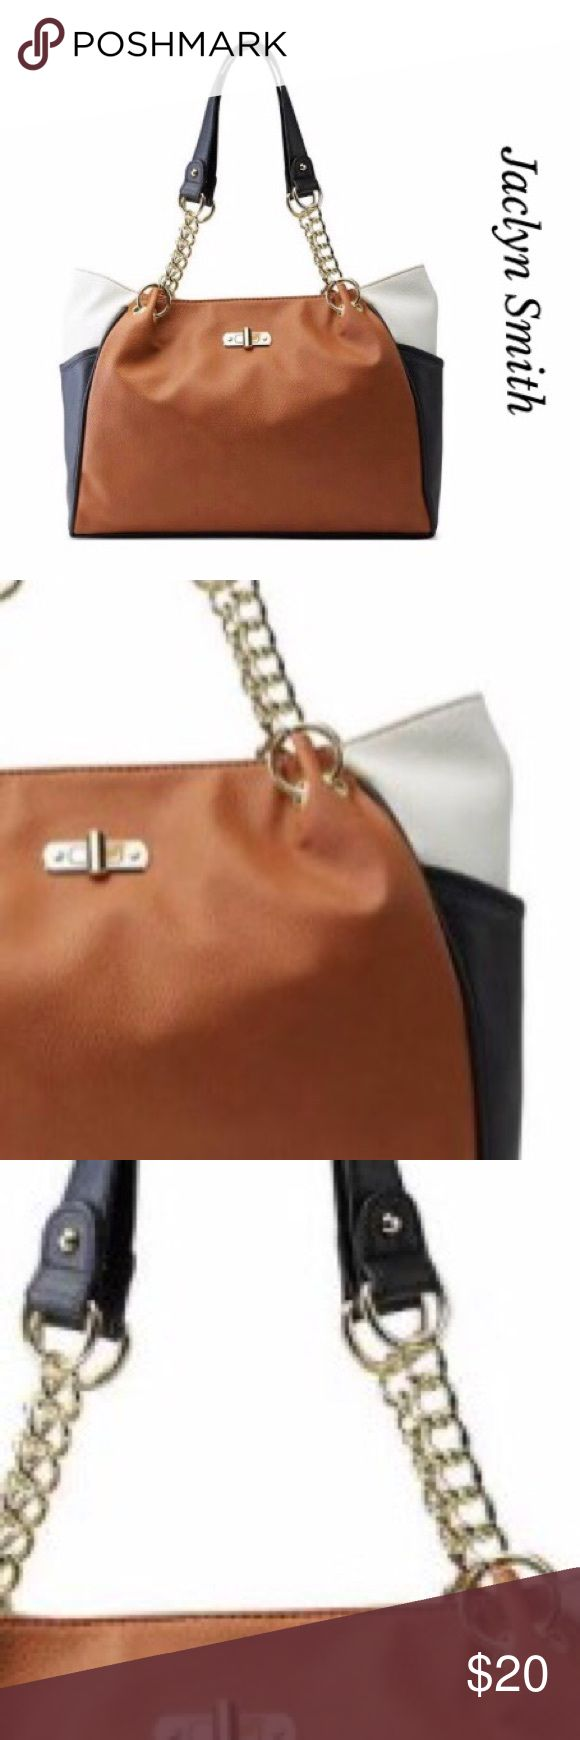 🎉1D SALE🎉COLOR BLOCK WOMEN SATCHEL PURSE🎀 Gorgeous Jaclyn Smith Color Block Satchel purse. Featuring three colors cream, black and carmel color. Chain straps and metal rings accents.  Magnetic closure. Faux leather. Jaclyn Smith Bags Satchels